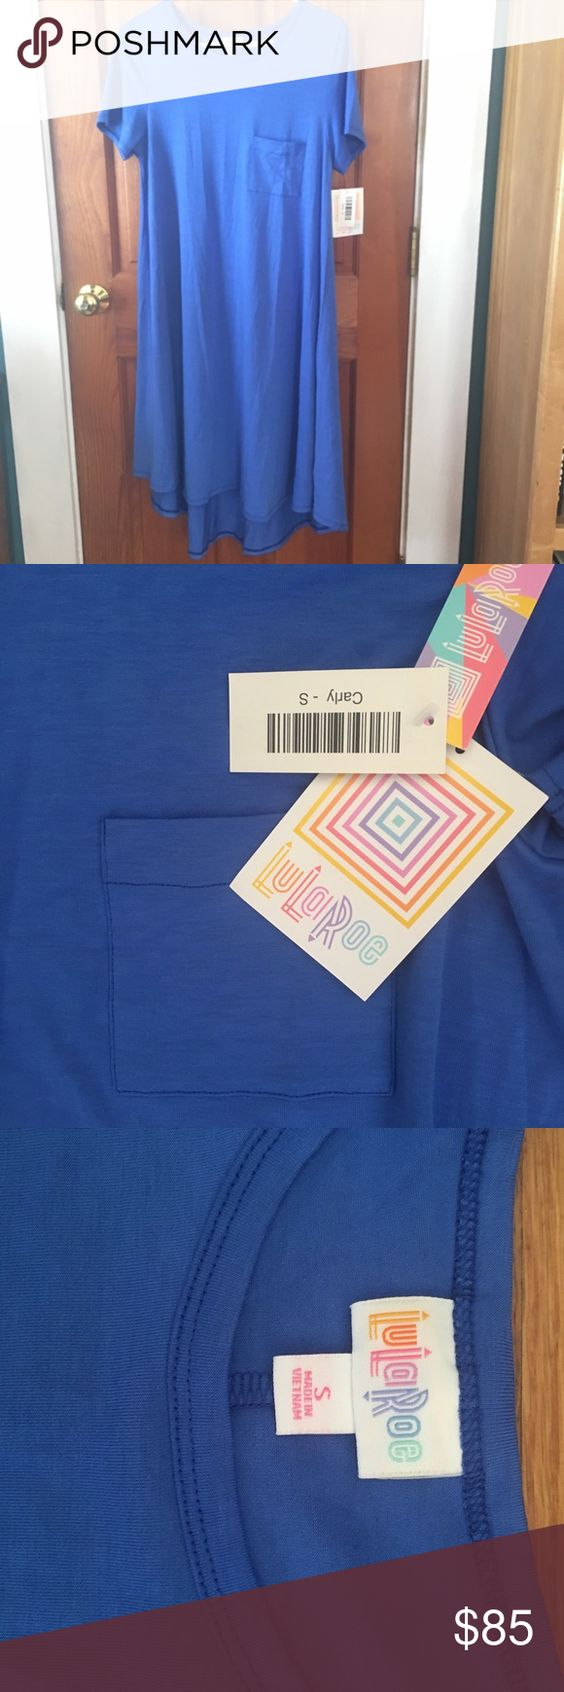 NWT Lularoe blue Carly. Size S. Hard to find size small solid bright blue Carly dress. Longer in the back. Very cute baby doll dress which can also be worn with leggings for fall/ winter. I was skeptical when I first saw the pictures but these look amazing on and can be worn many different ways. I will likely keep this if I can't recoup close to what I paid. LuLaRoe Dresses